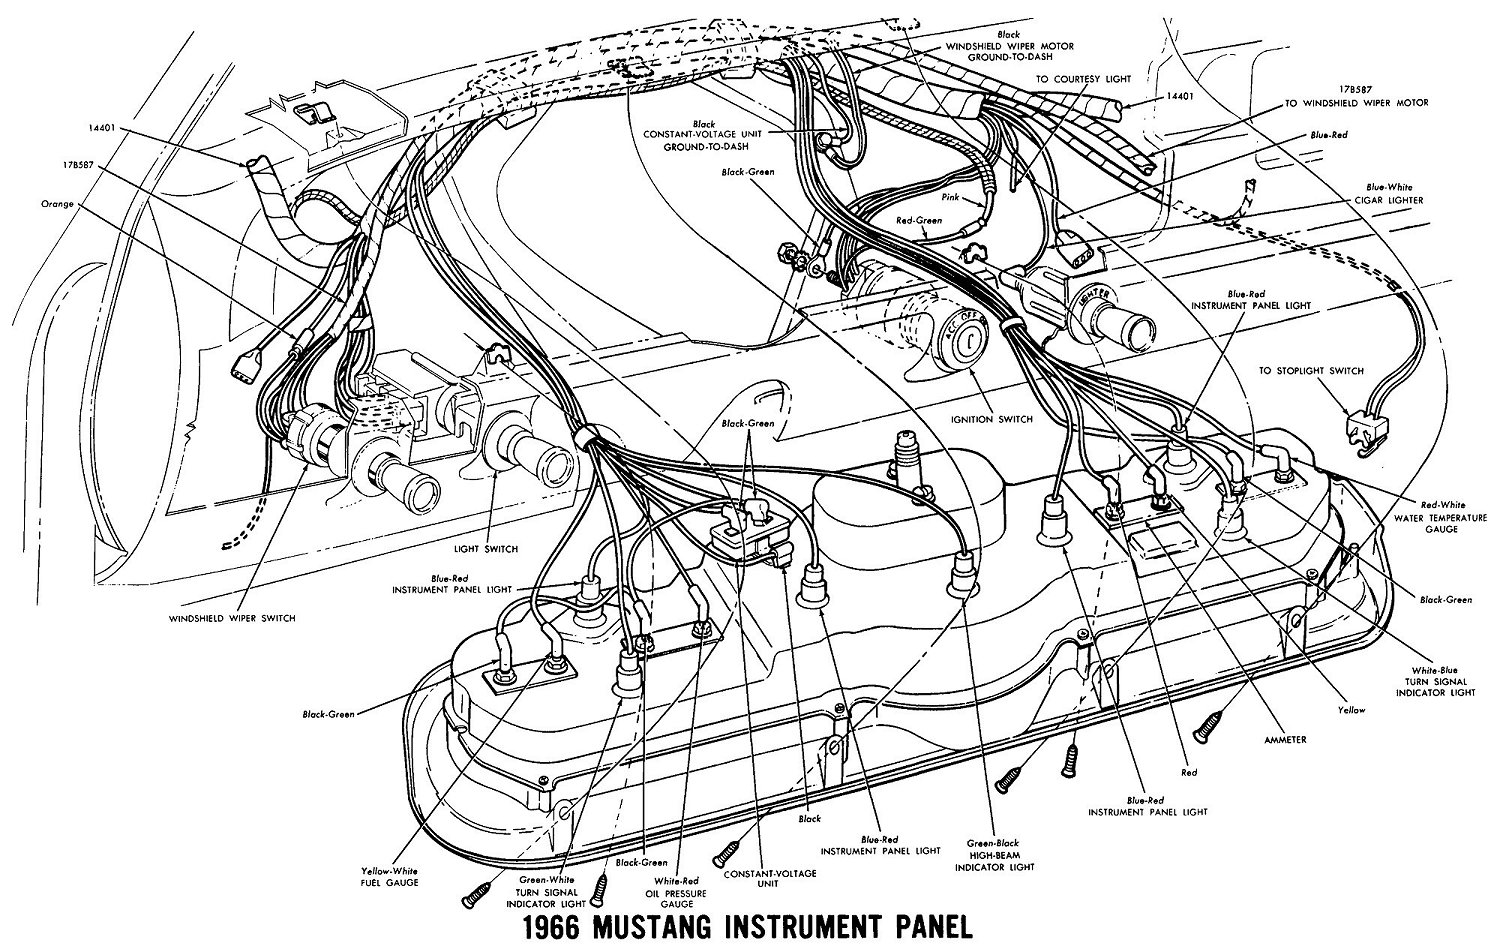 66instr 1966 mustang wiring diagrams average joe restoration 1969 mustang wiring diagram online at gsmx.co